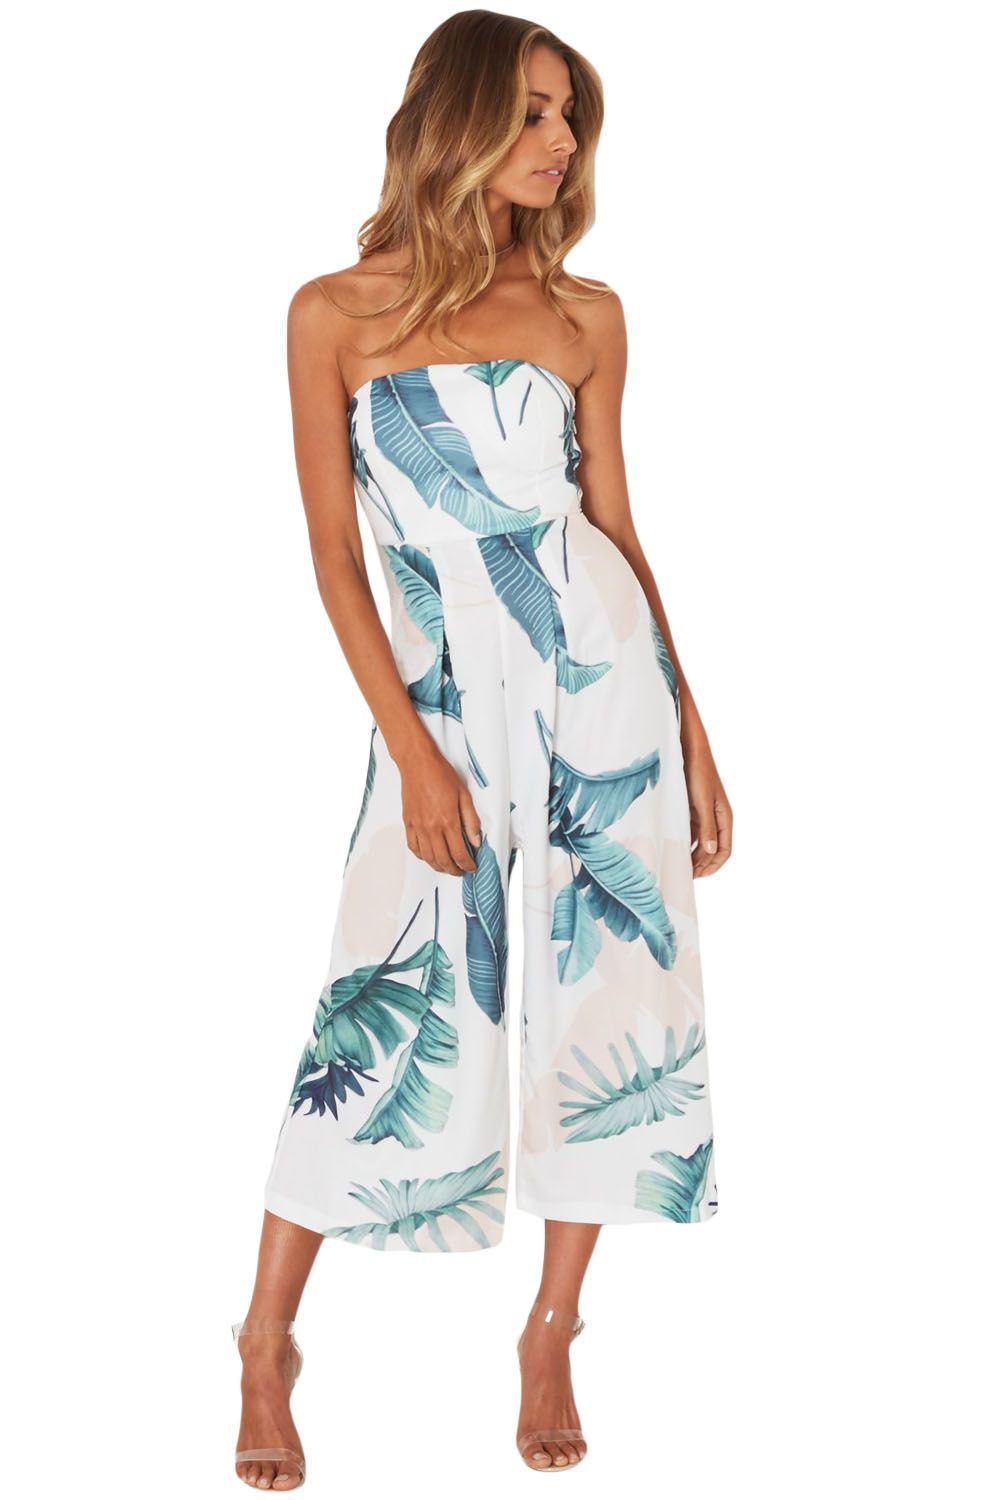 bffad8a2f1e5 White Leaf Print Strapless Capris Jumpsuit. White Leaf Print Strapless  Capris Jumpsuit Rompers Dressy